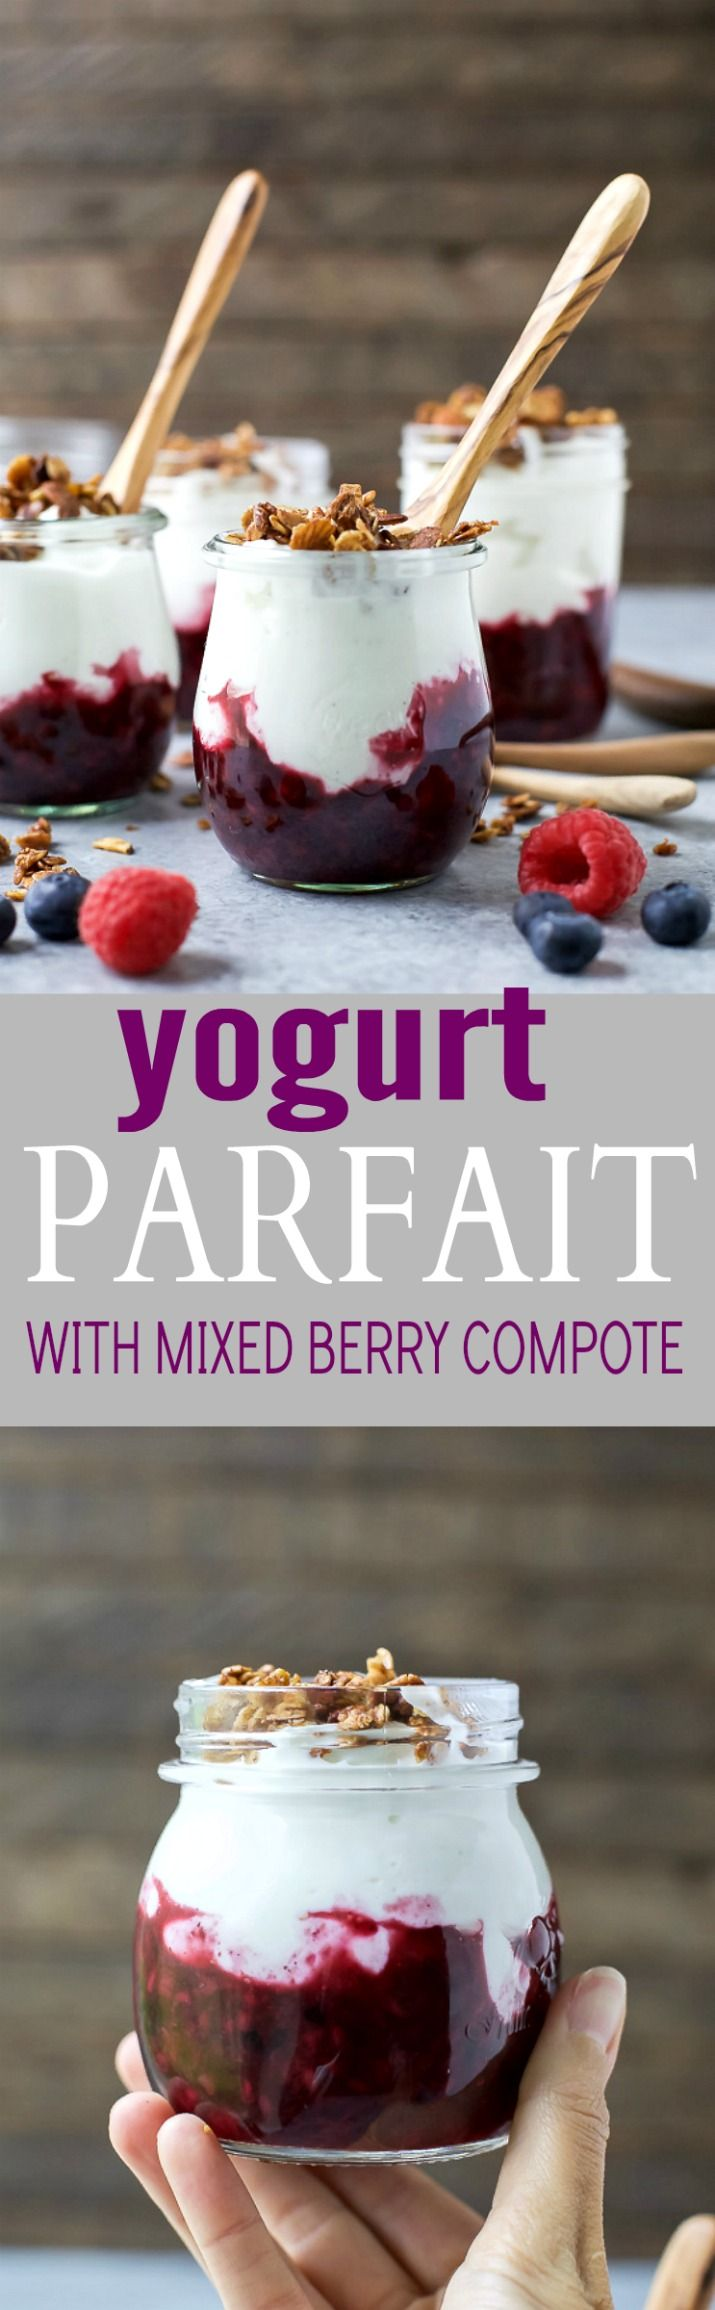 Fresh Yogurt Parfait with a Mixed Berry Compote and crunchy vanilla almond granola - an easy breakfast that's kid friendly! #ad #UndeniablyDairy @DairyGood